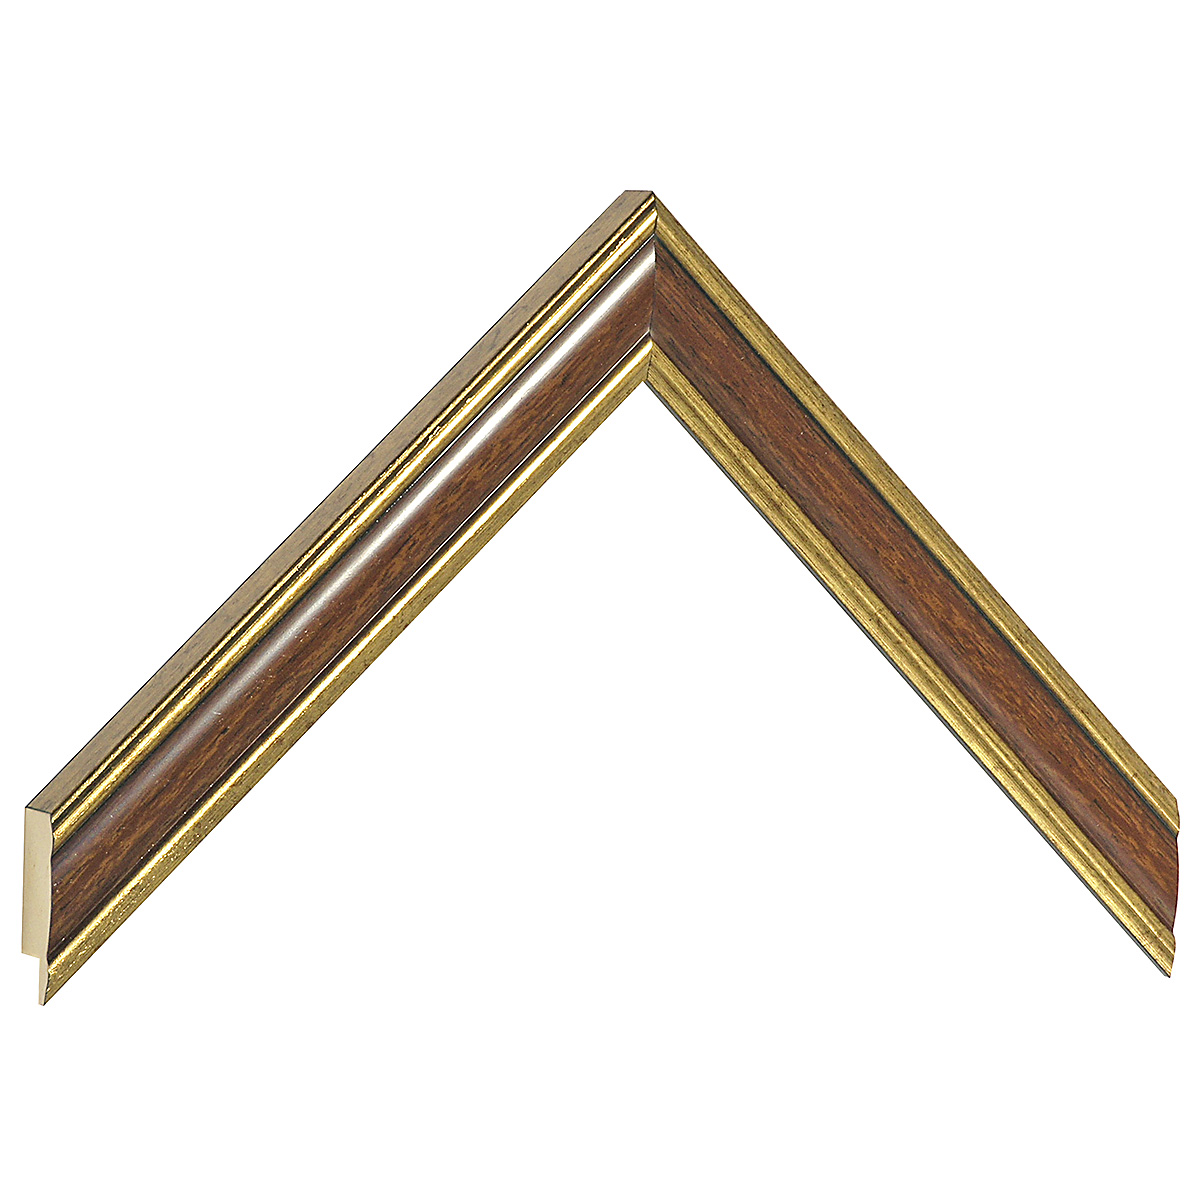 Moulding ayous - Width 23mm - Gold with walnut band